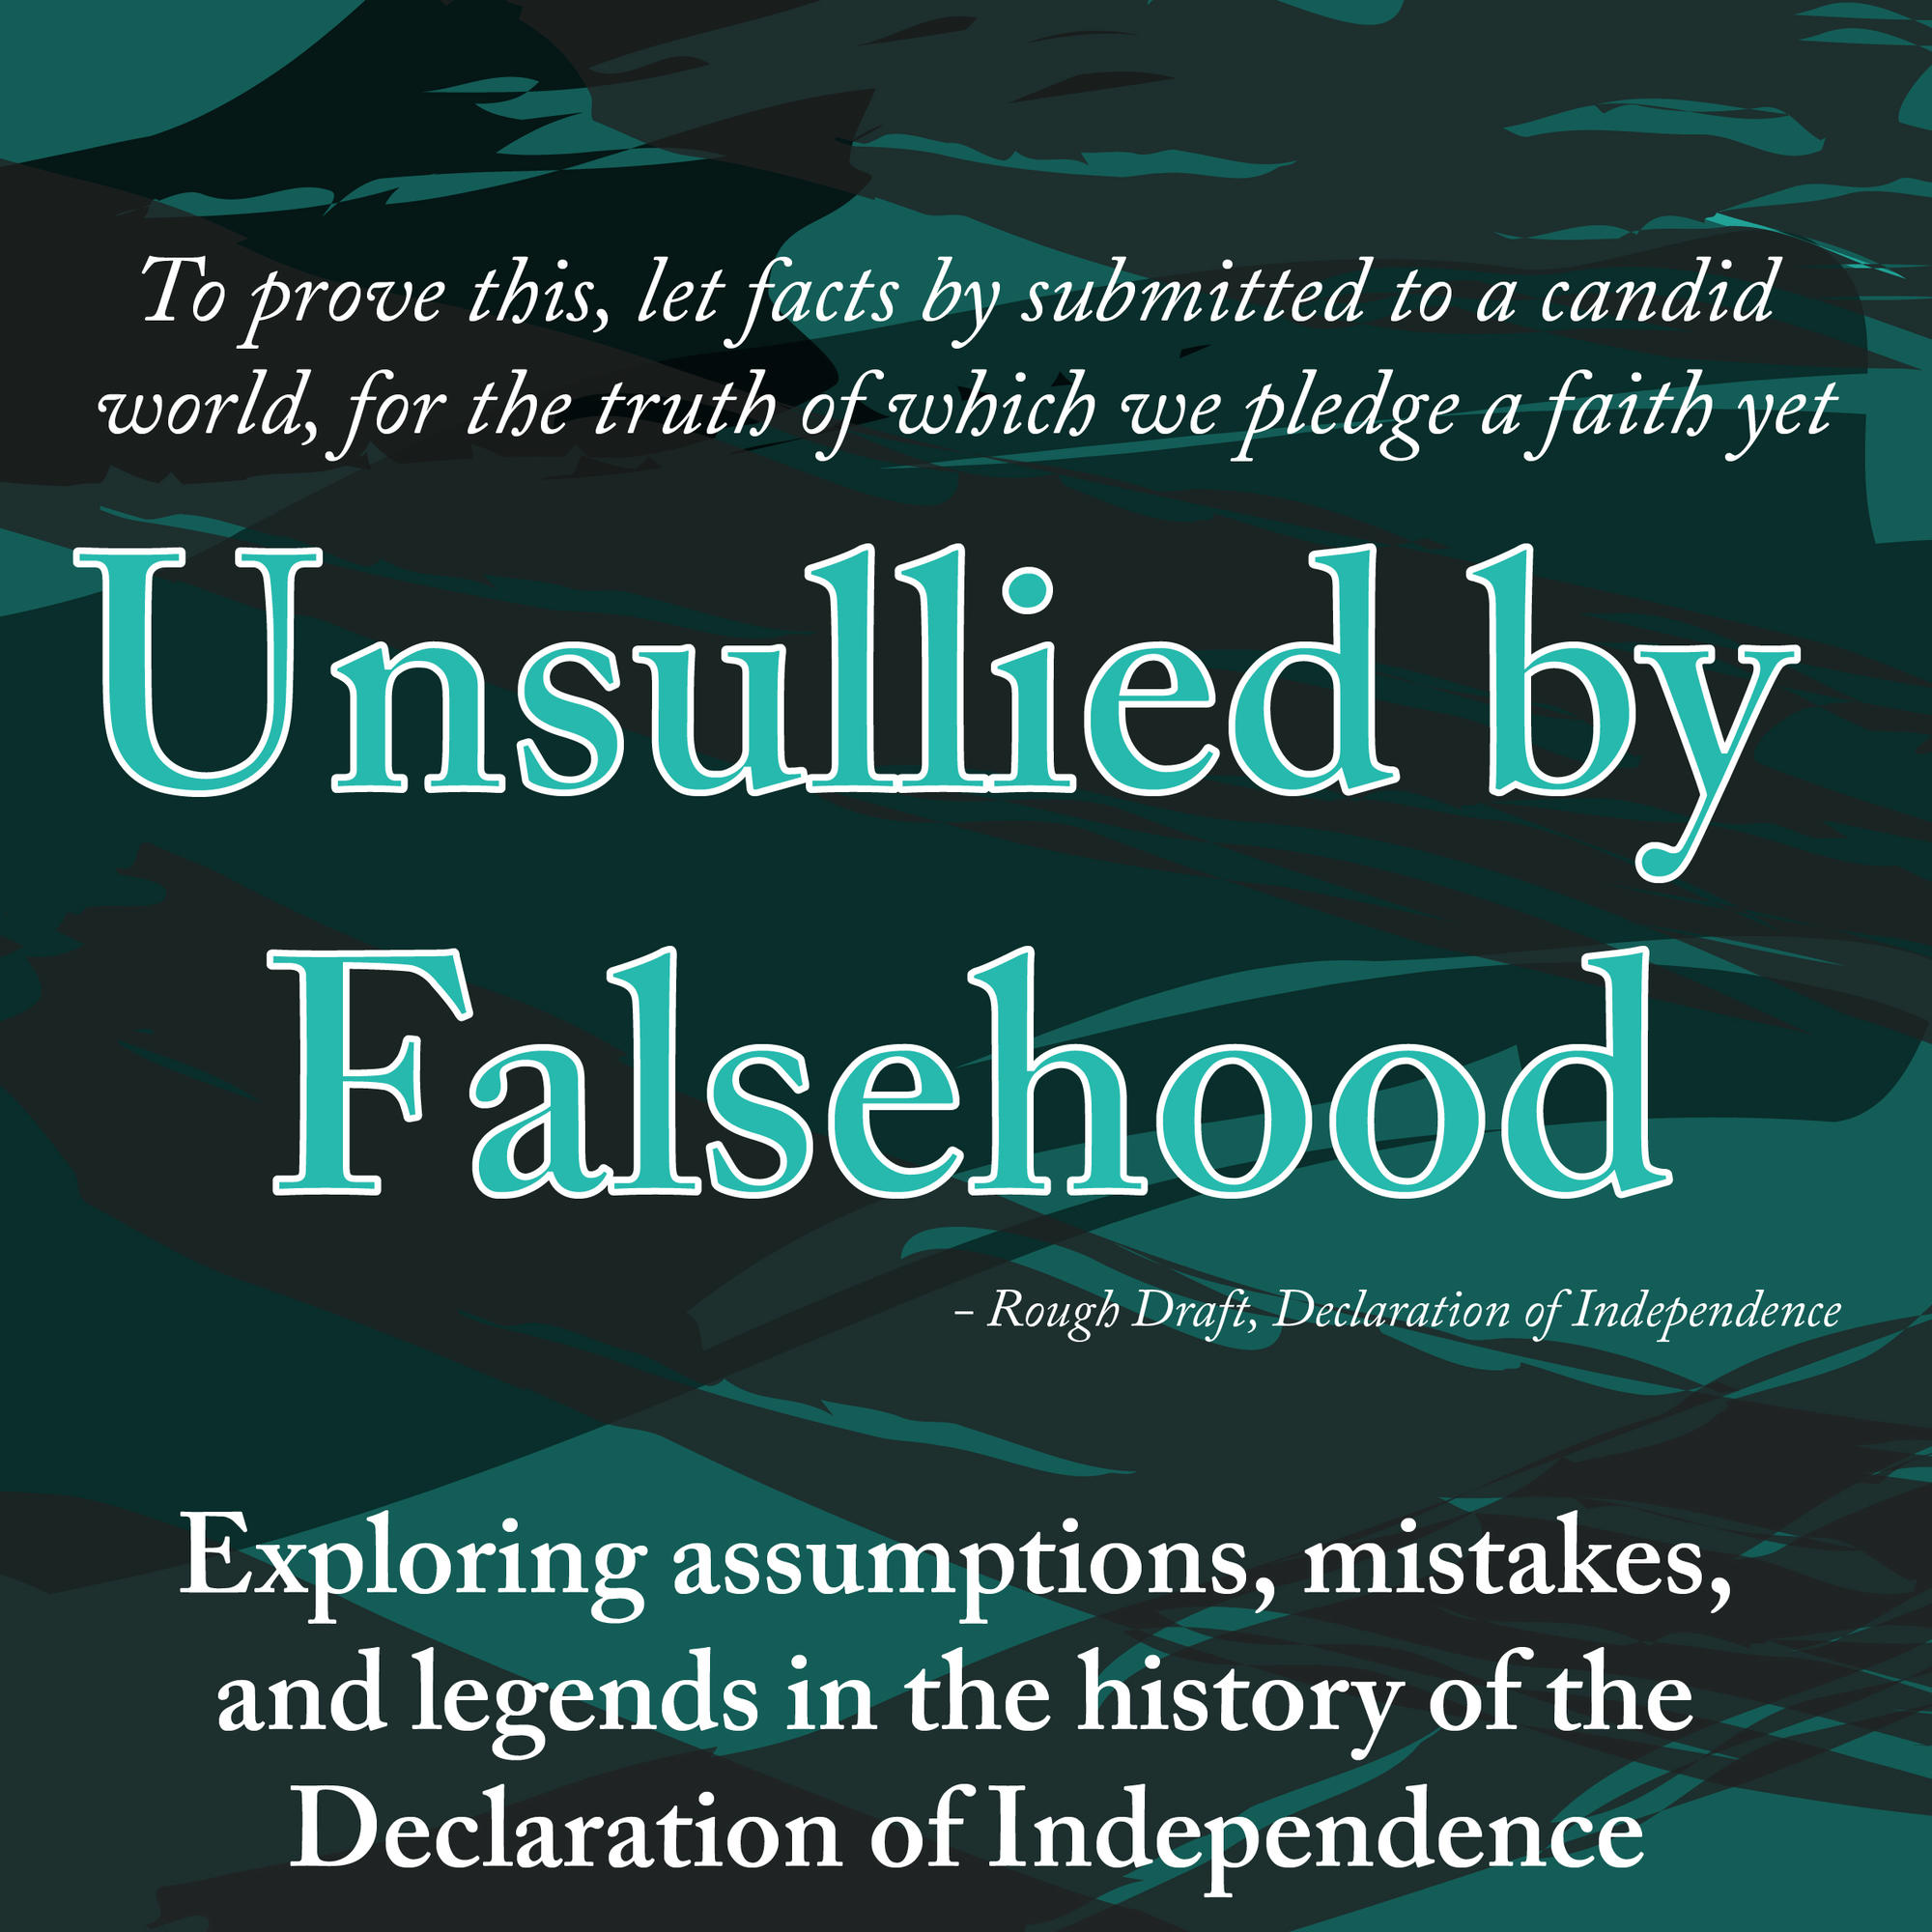 Unsullied by Falsehood